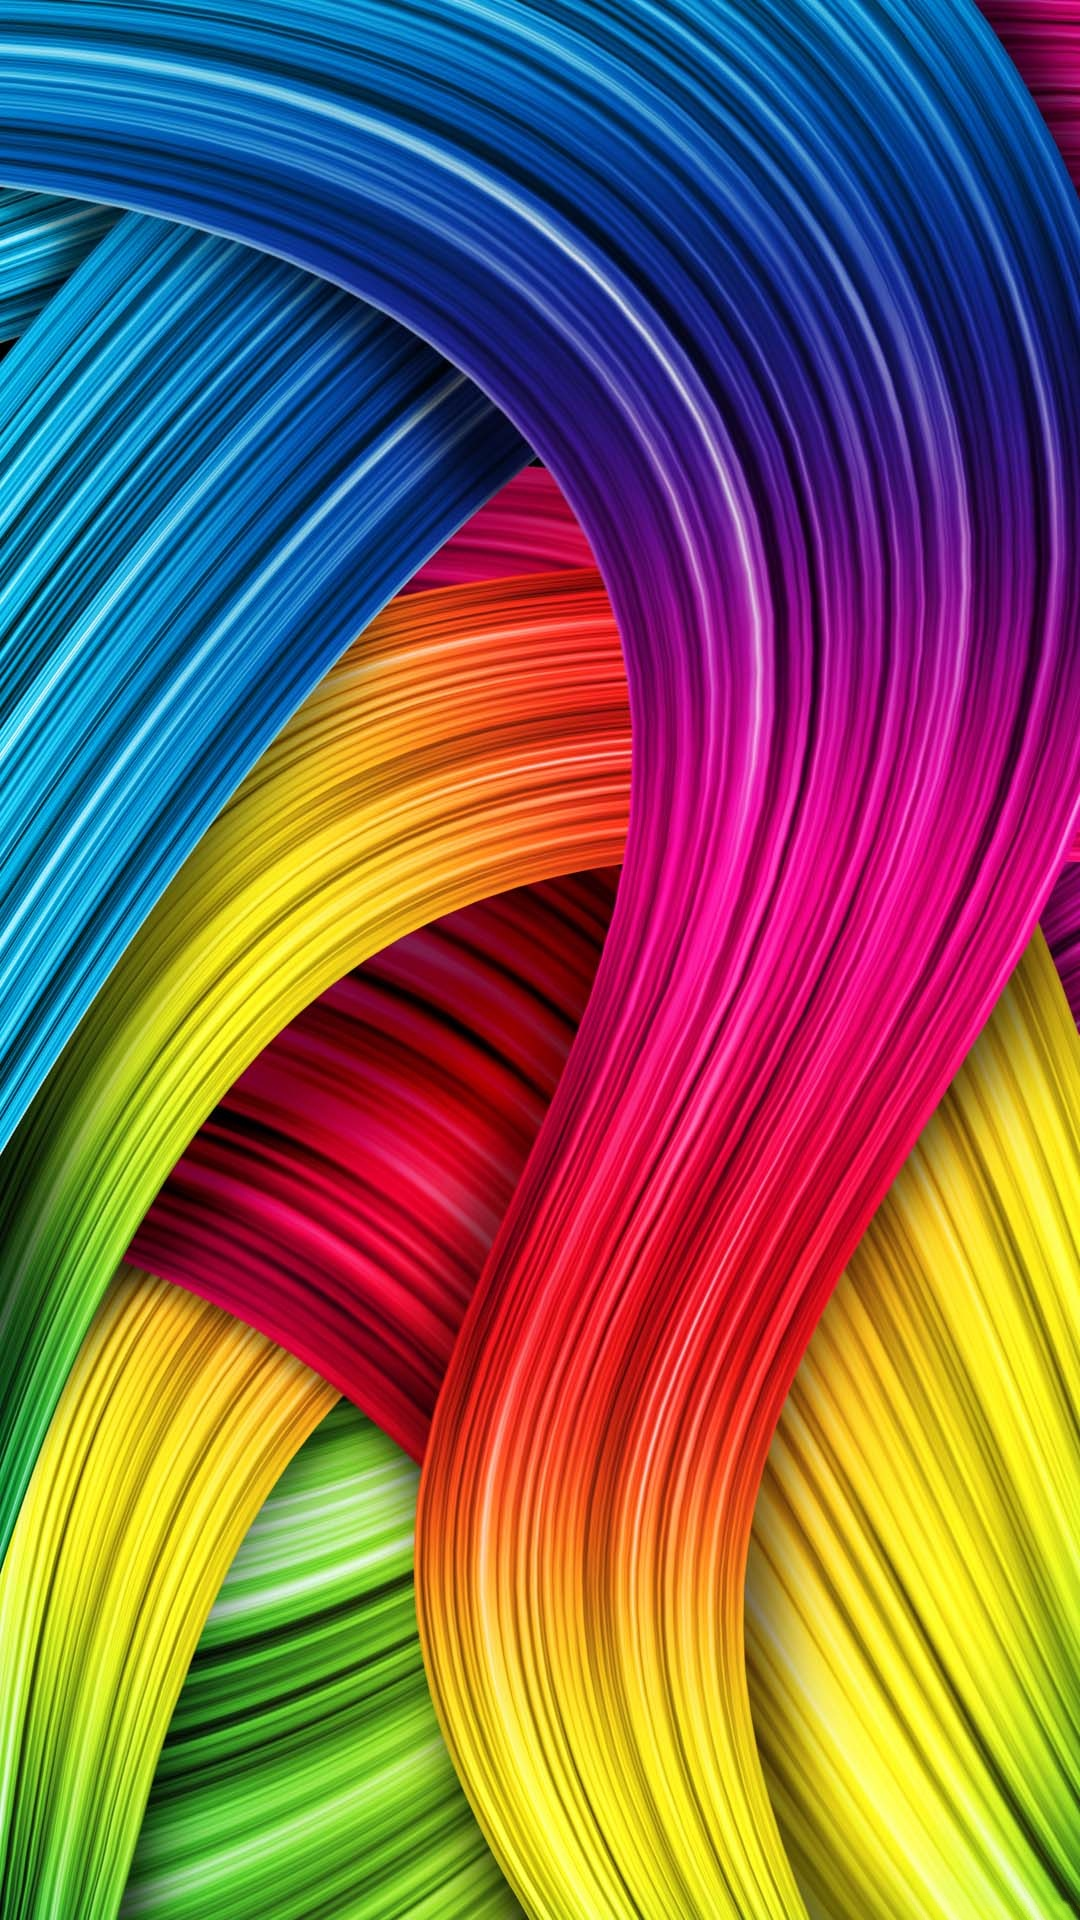 Most Colorful Wallpaper